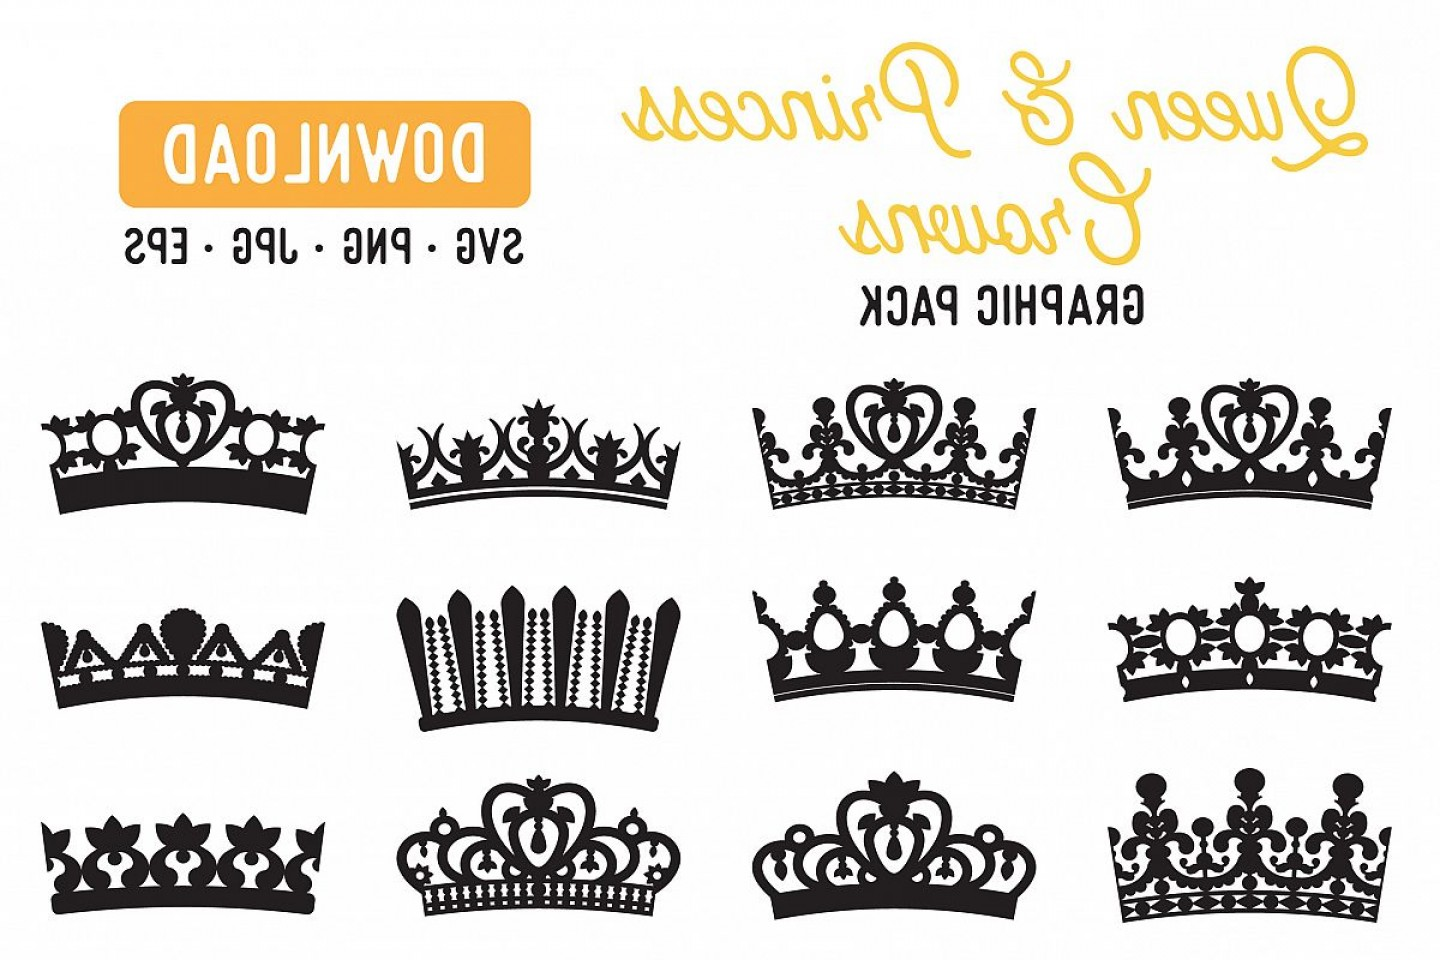 Princess Crown Vector Graphic: Princess Crown Queen Crown Vector Graphic Pack